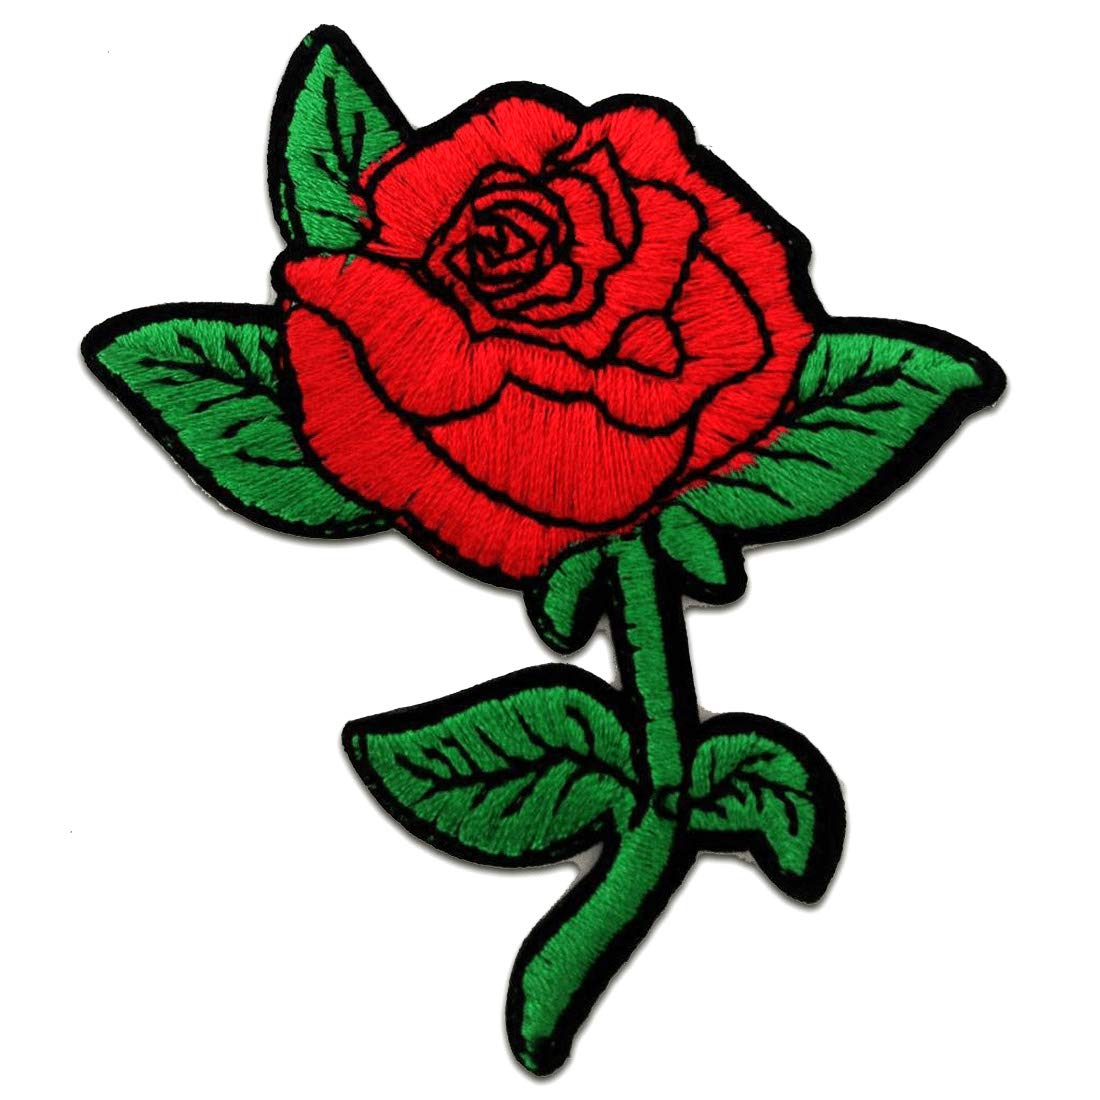 Beautiful Roses Patch ''6,8 x 7,8 cm'' Patch - Embroidered Iron On Patches Sew On Patches Embroidery Applikations Applique Embroidered Iron On Patches Sew On Patches Embroidery Applikations Applique Catch-the-Patch.de